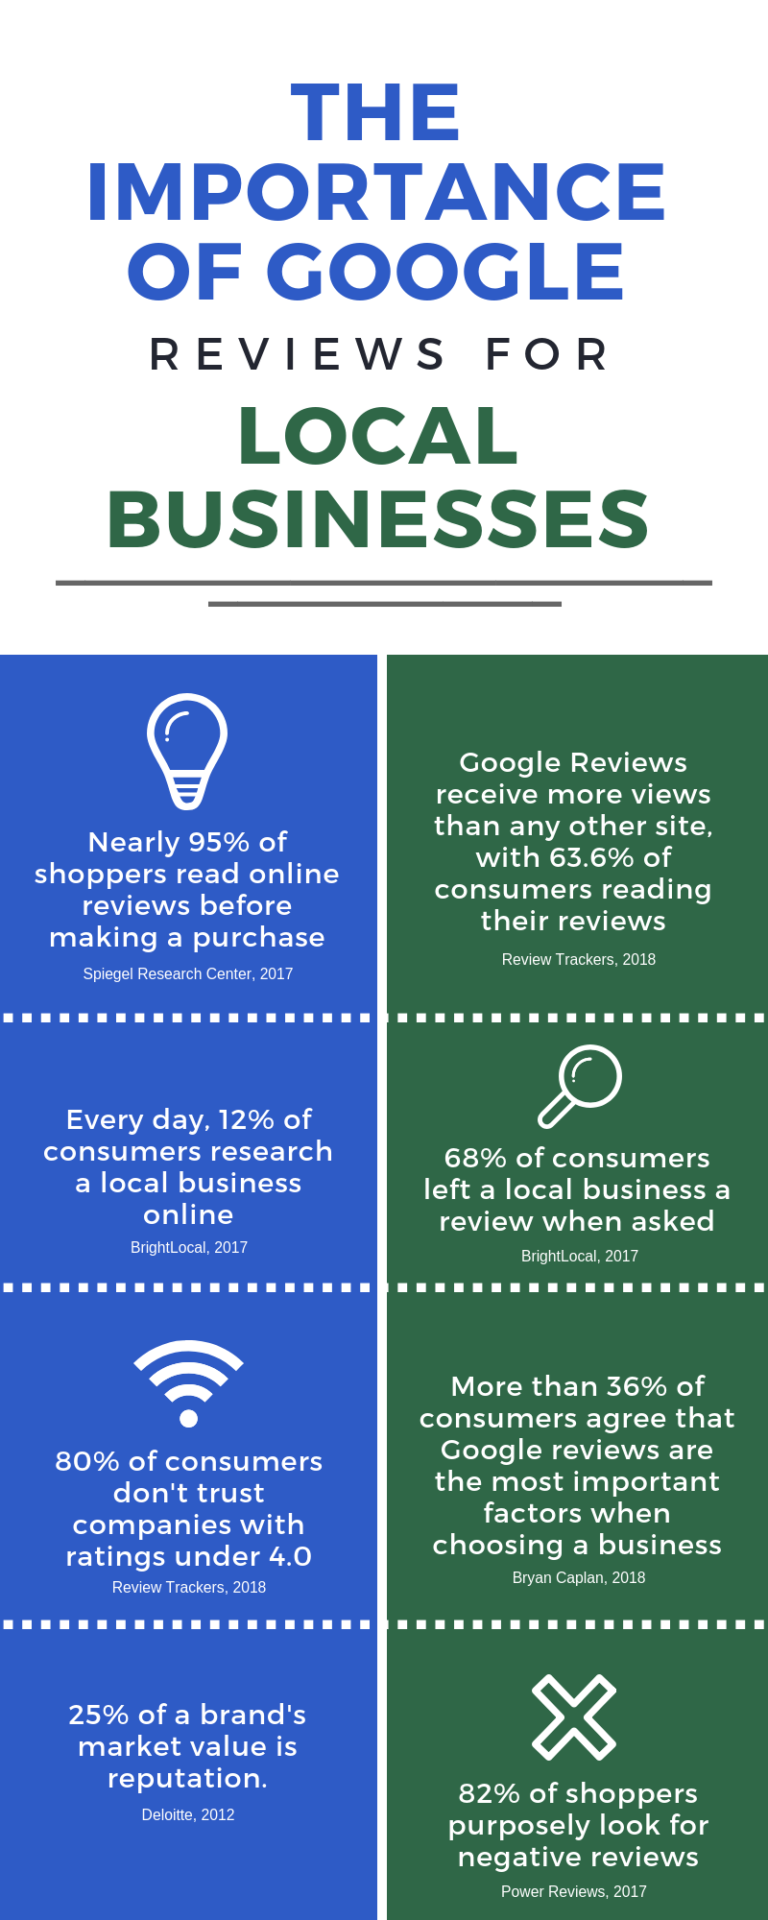 The importance of Google Reviews for Local Businesses